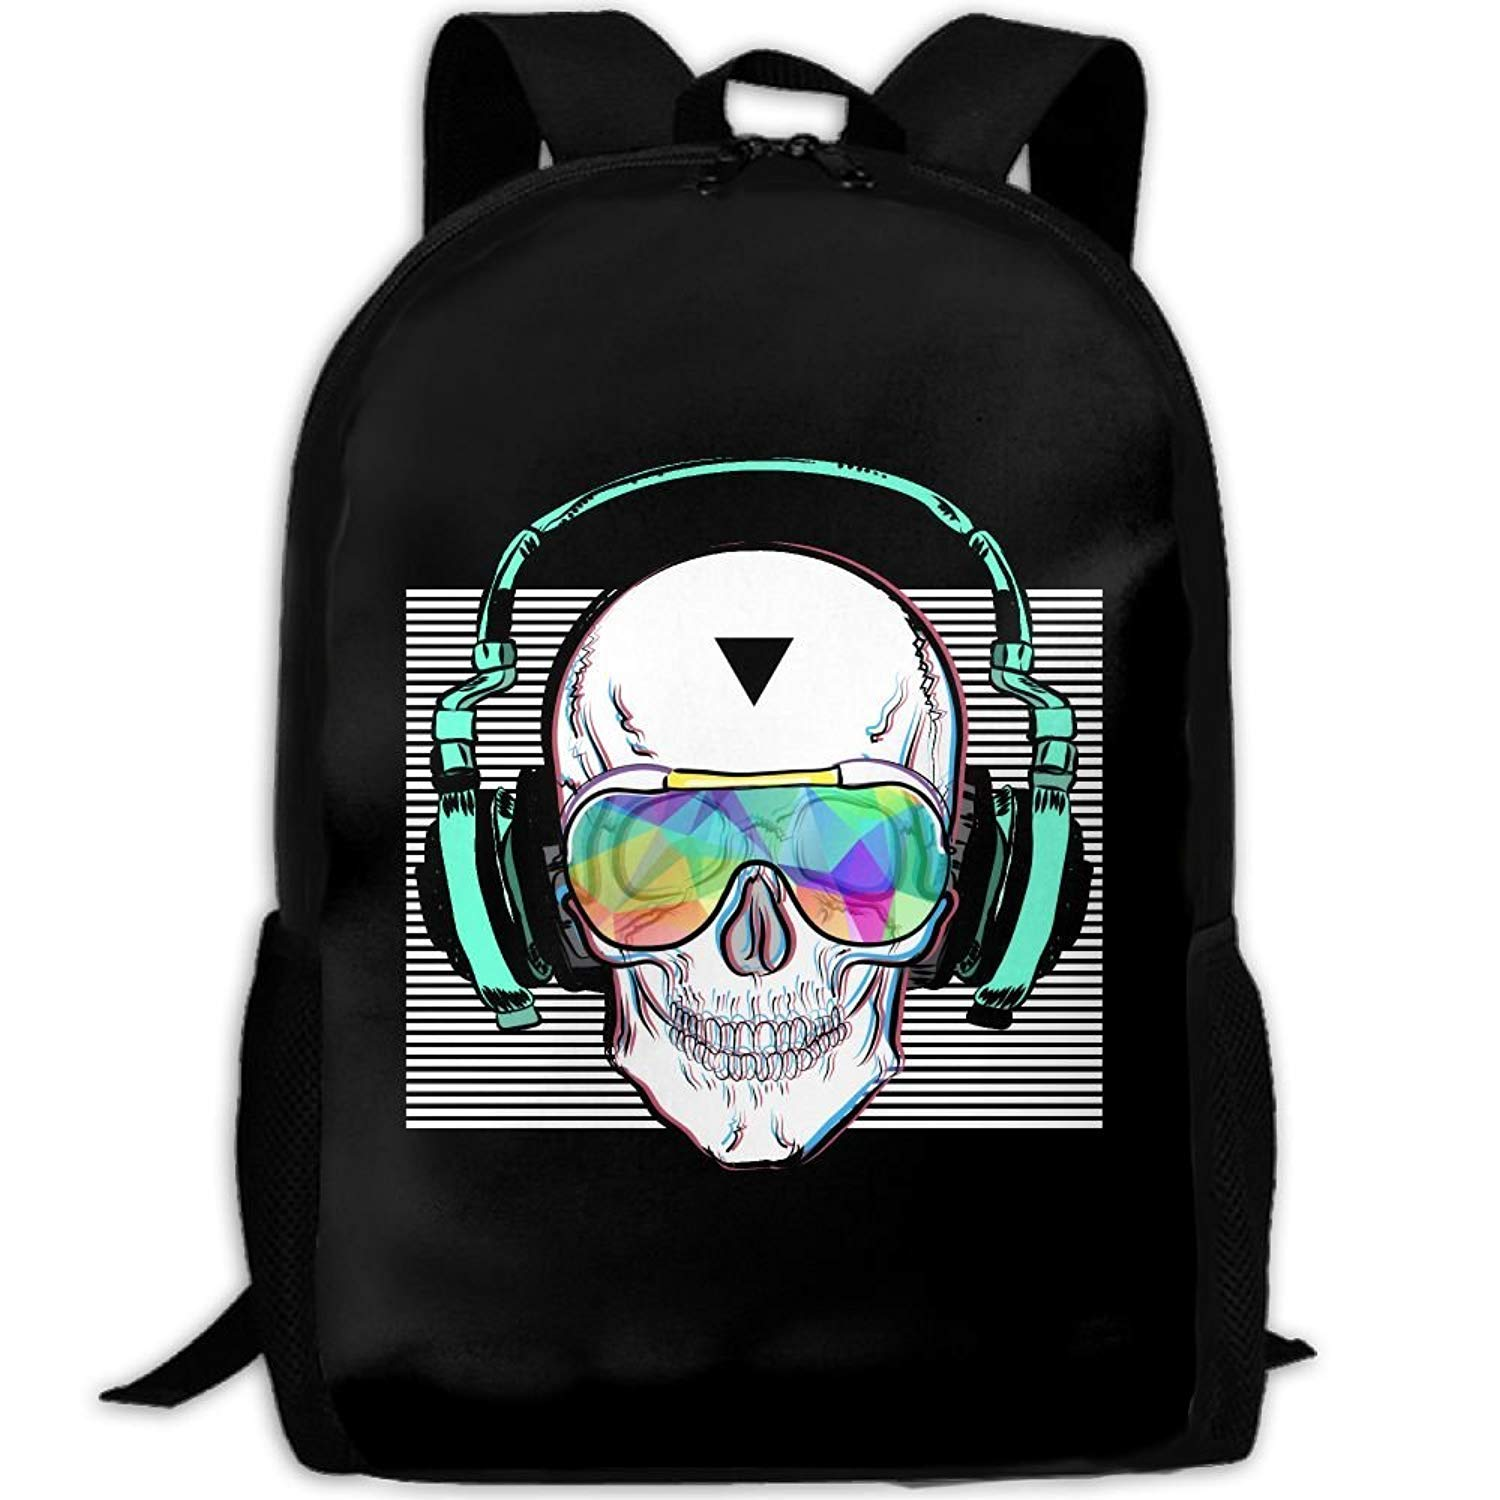 Backpack for Adults Hiking Big High Black Canvas Cool Skull Daypacks